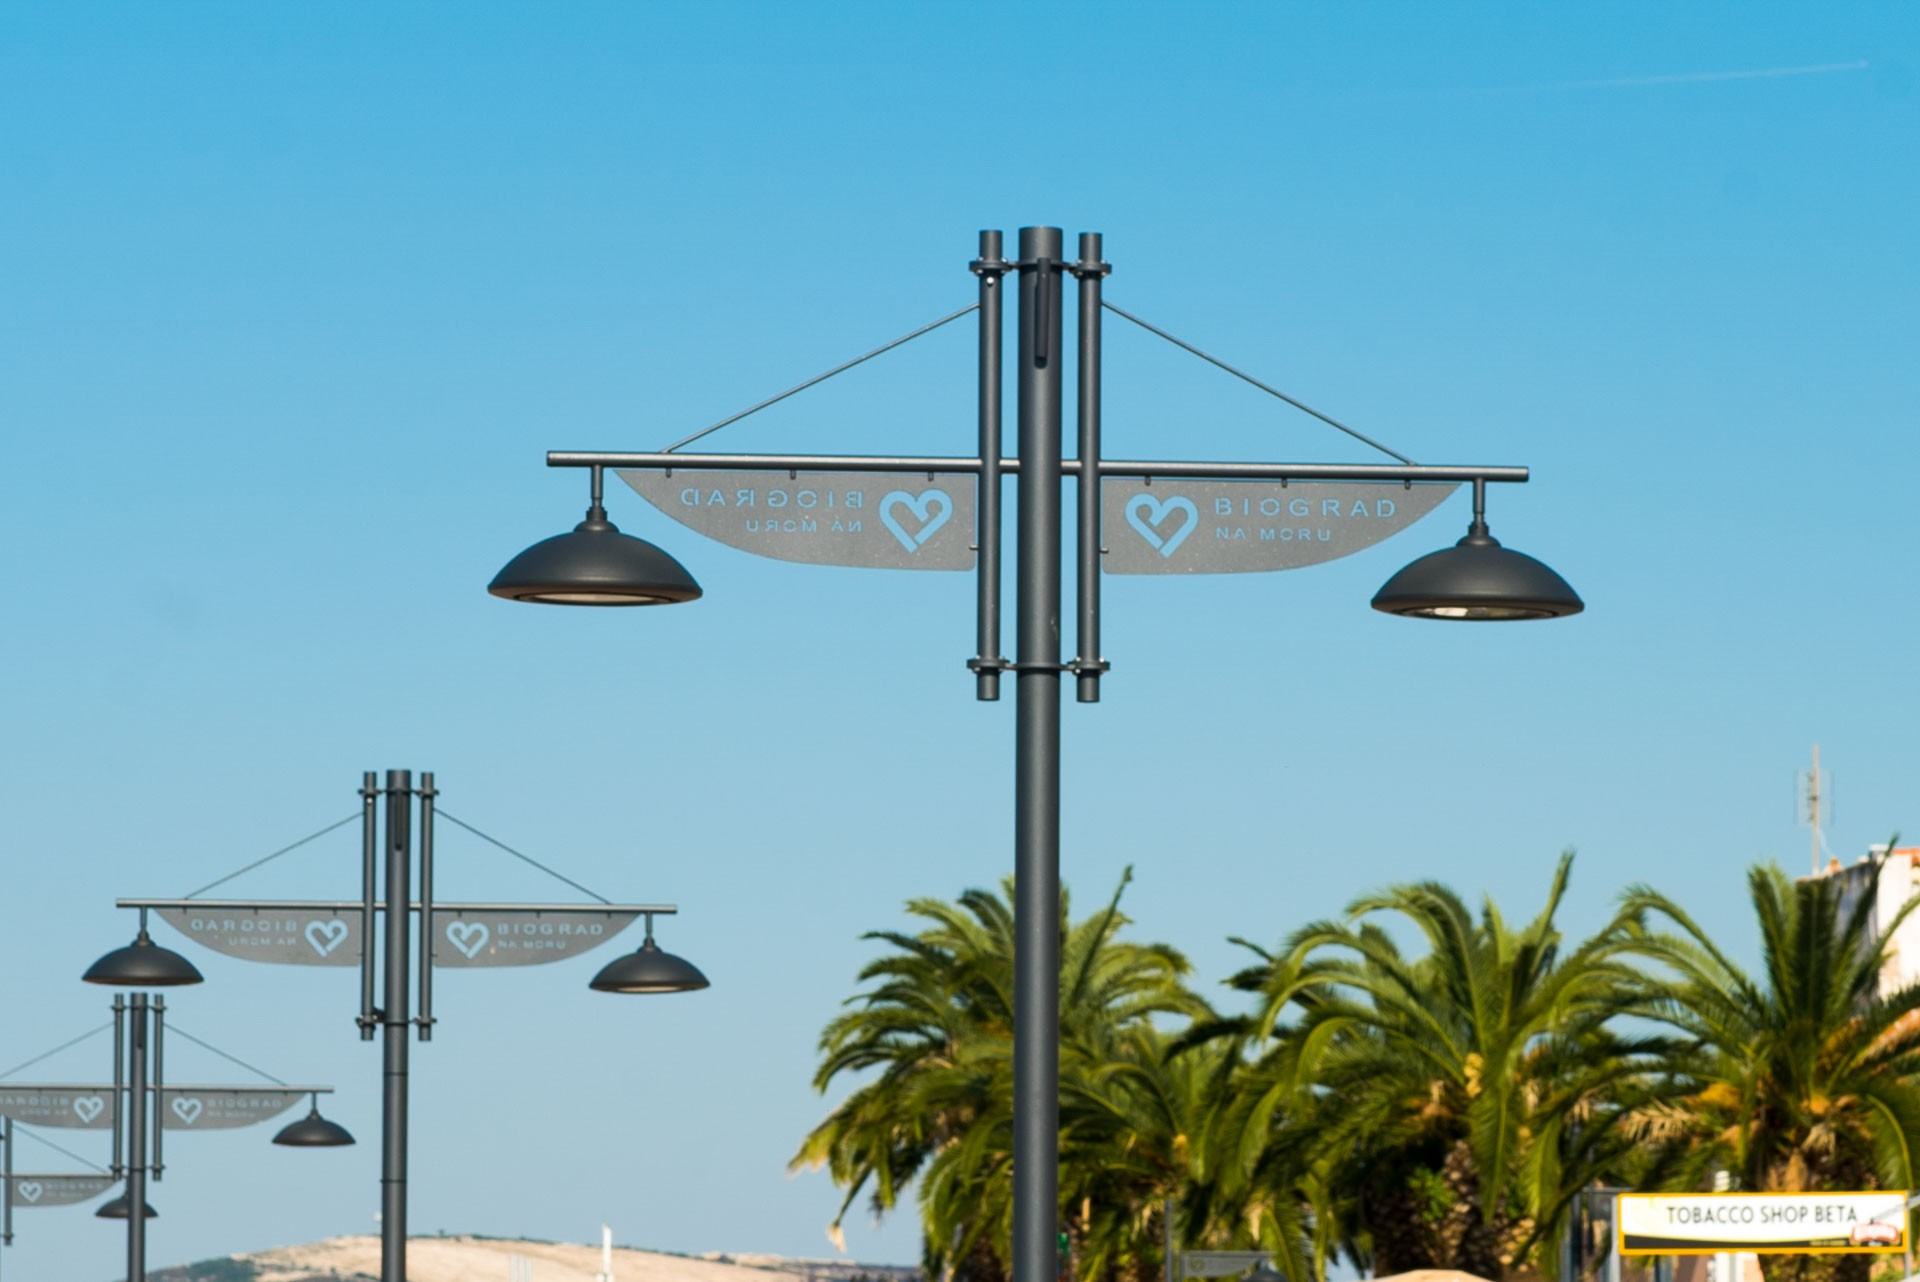 Custom-made lighting fixtures and lamp post